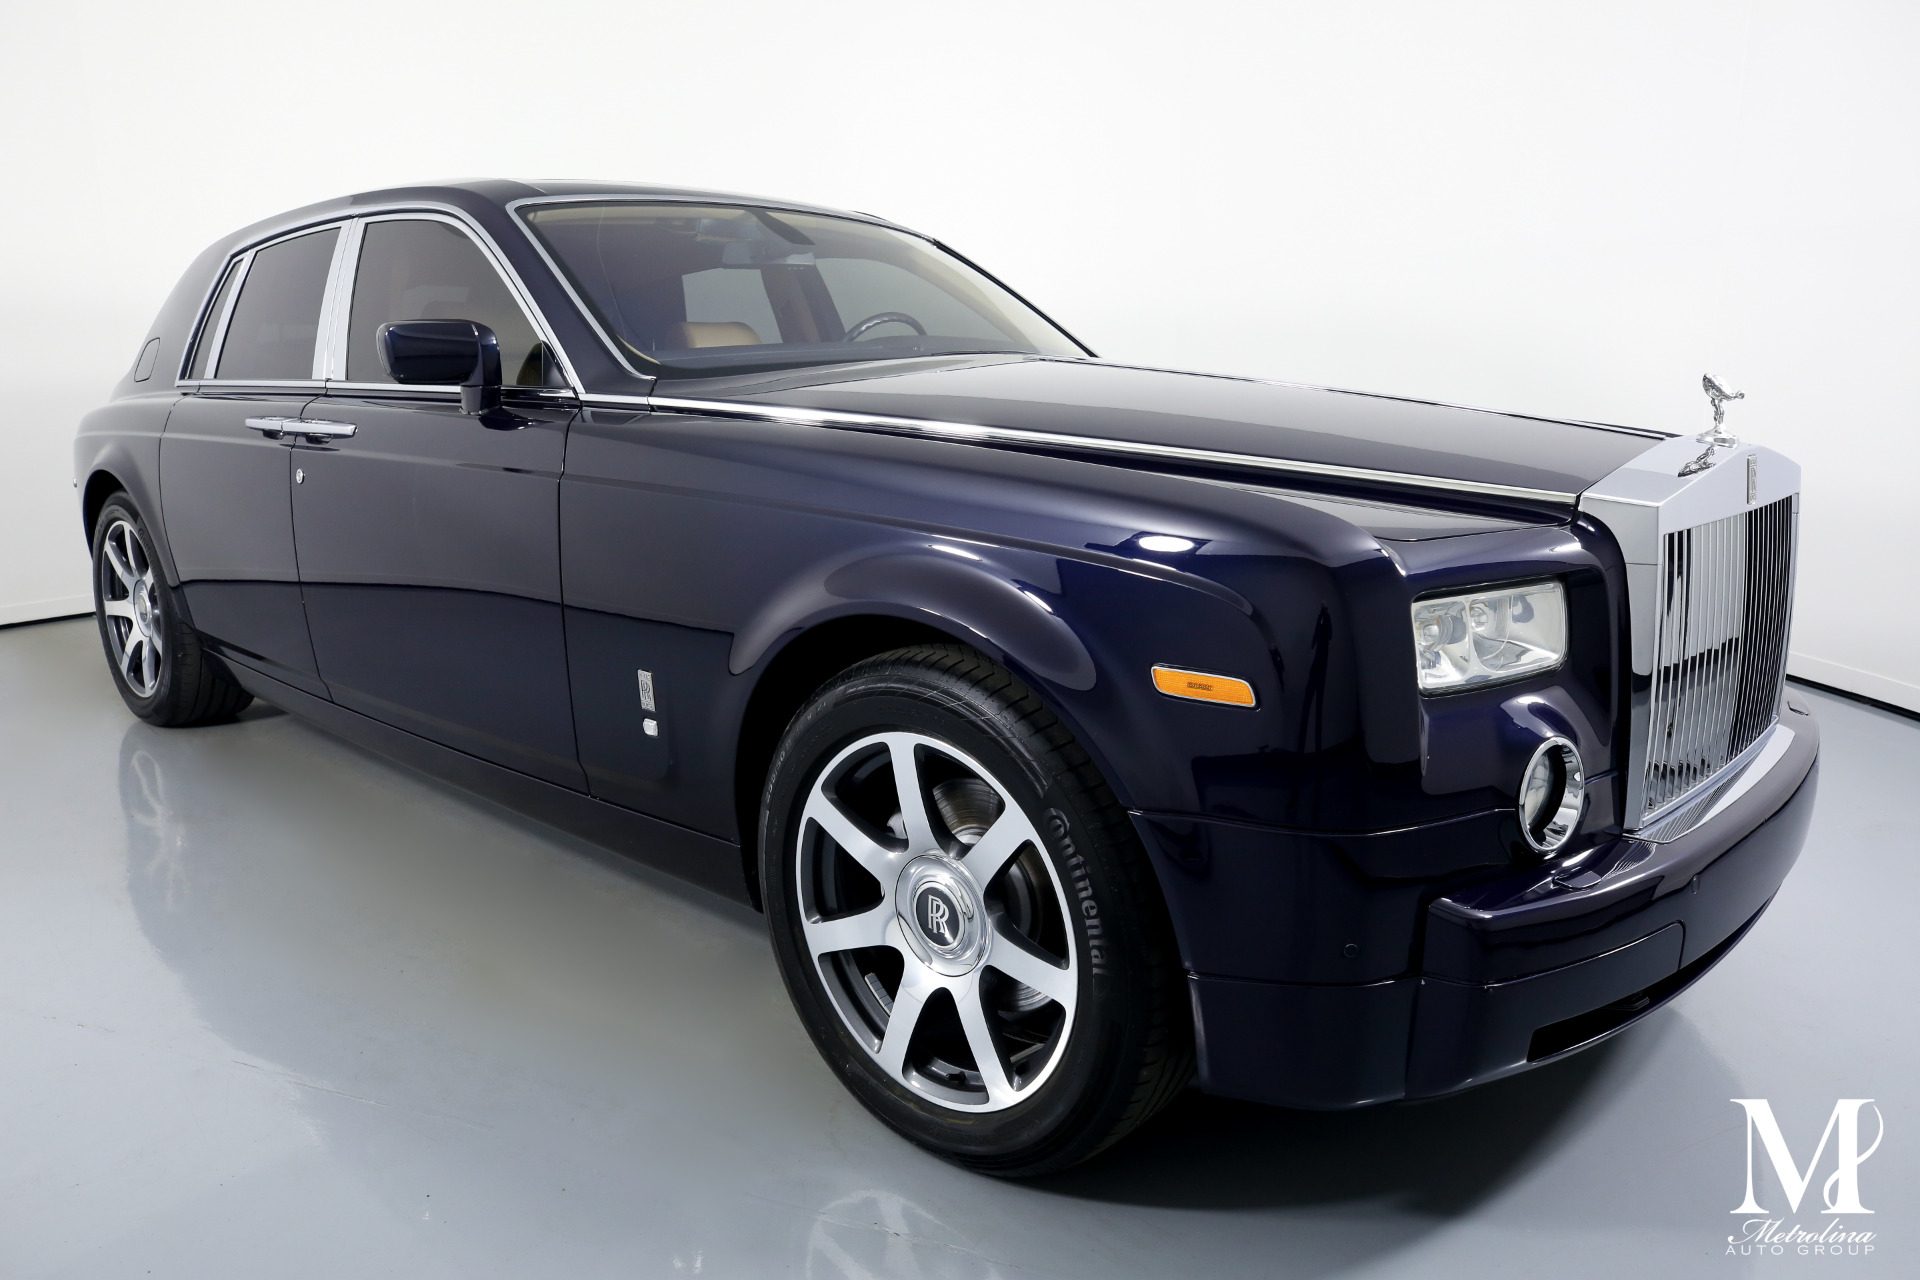 Used 2005 Rolls-Royce Phantom for sale Sold at Metrolina Auto Group in Charlotte NC 28217 - 2